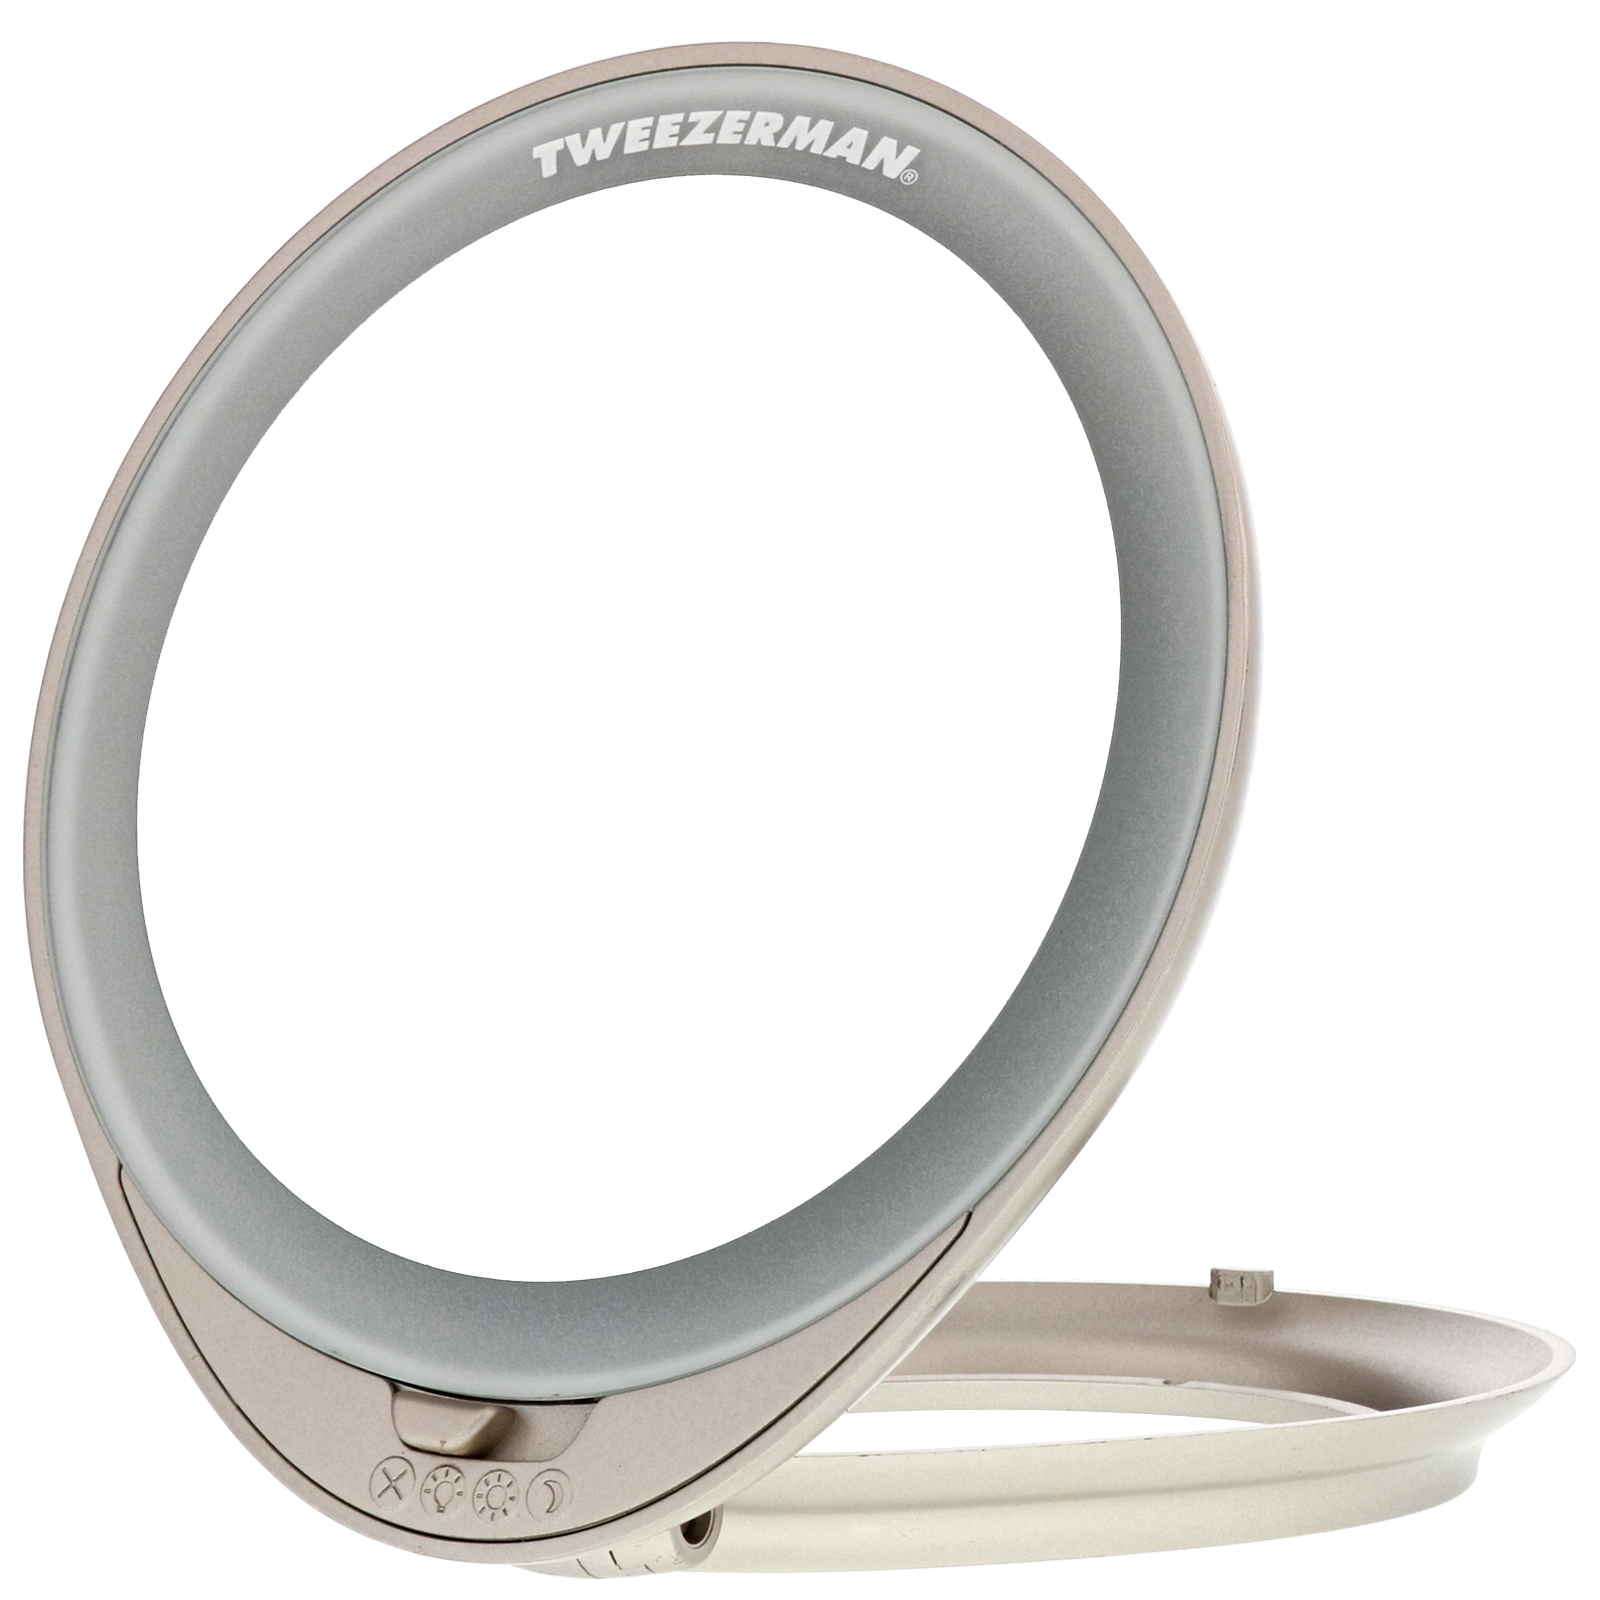 Tweezerman Face Adjustable Lighted Mirror